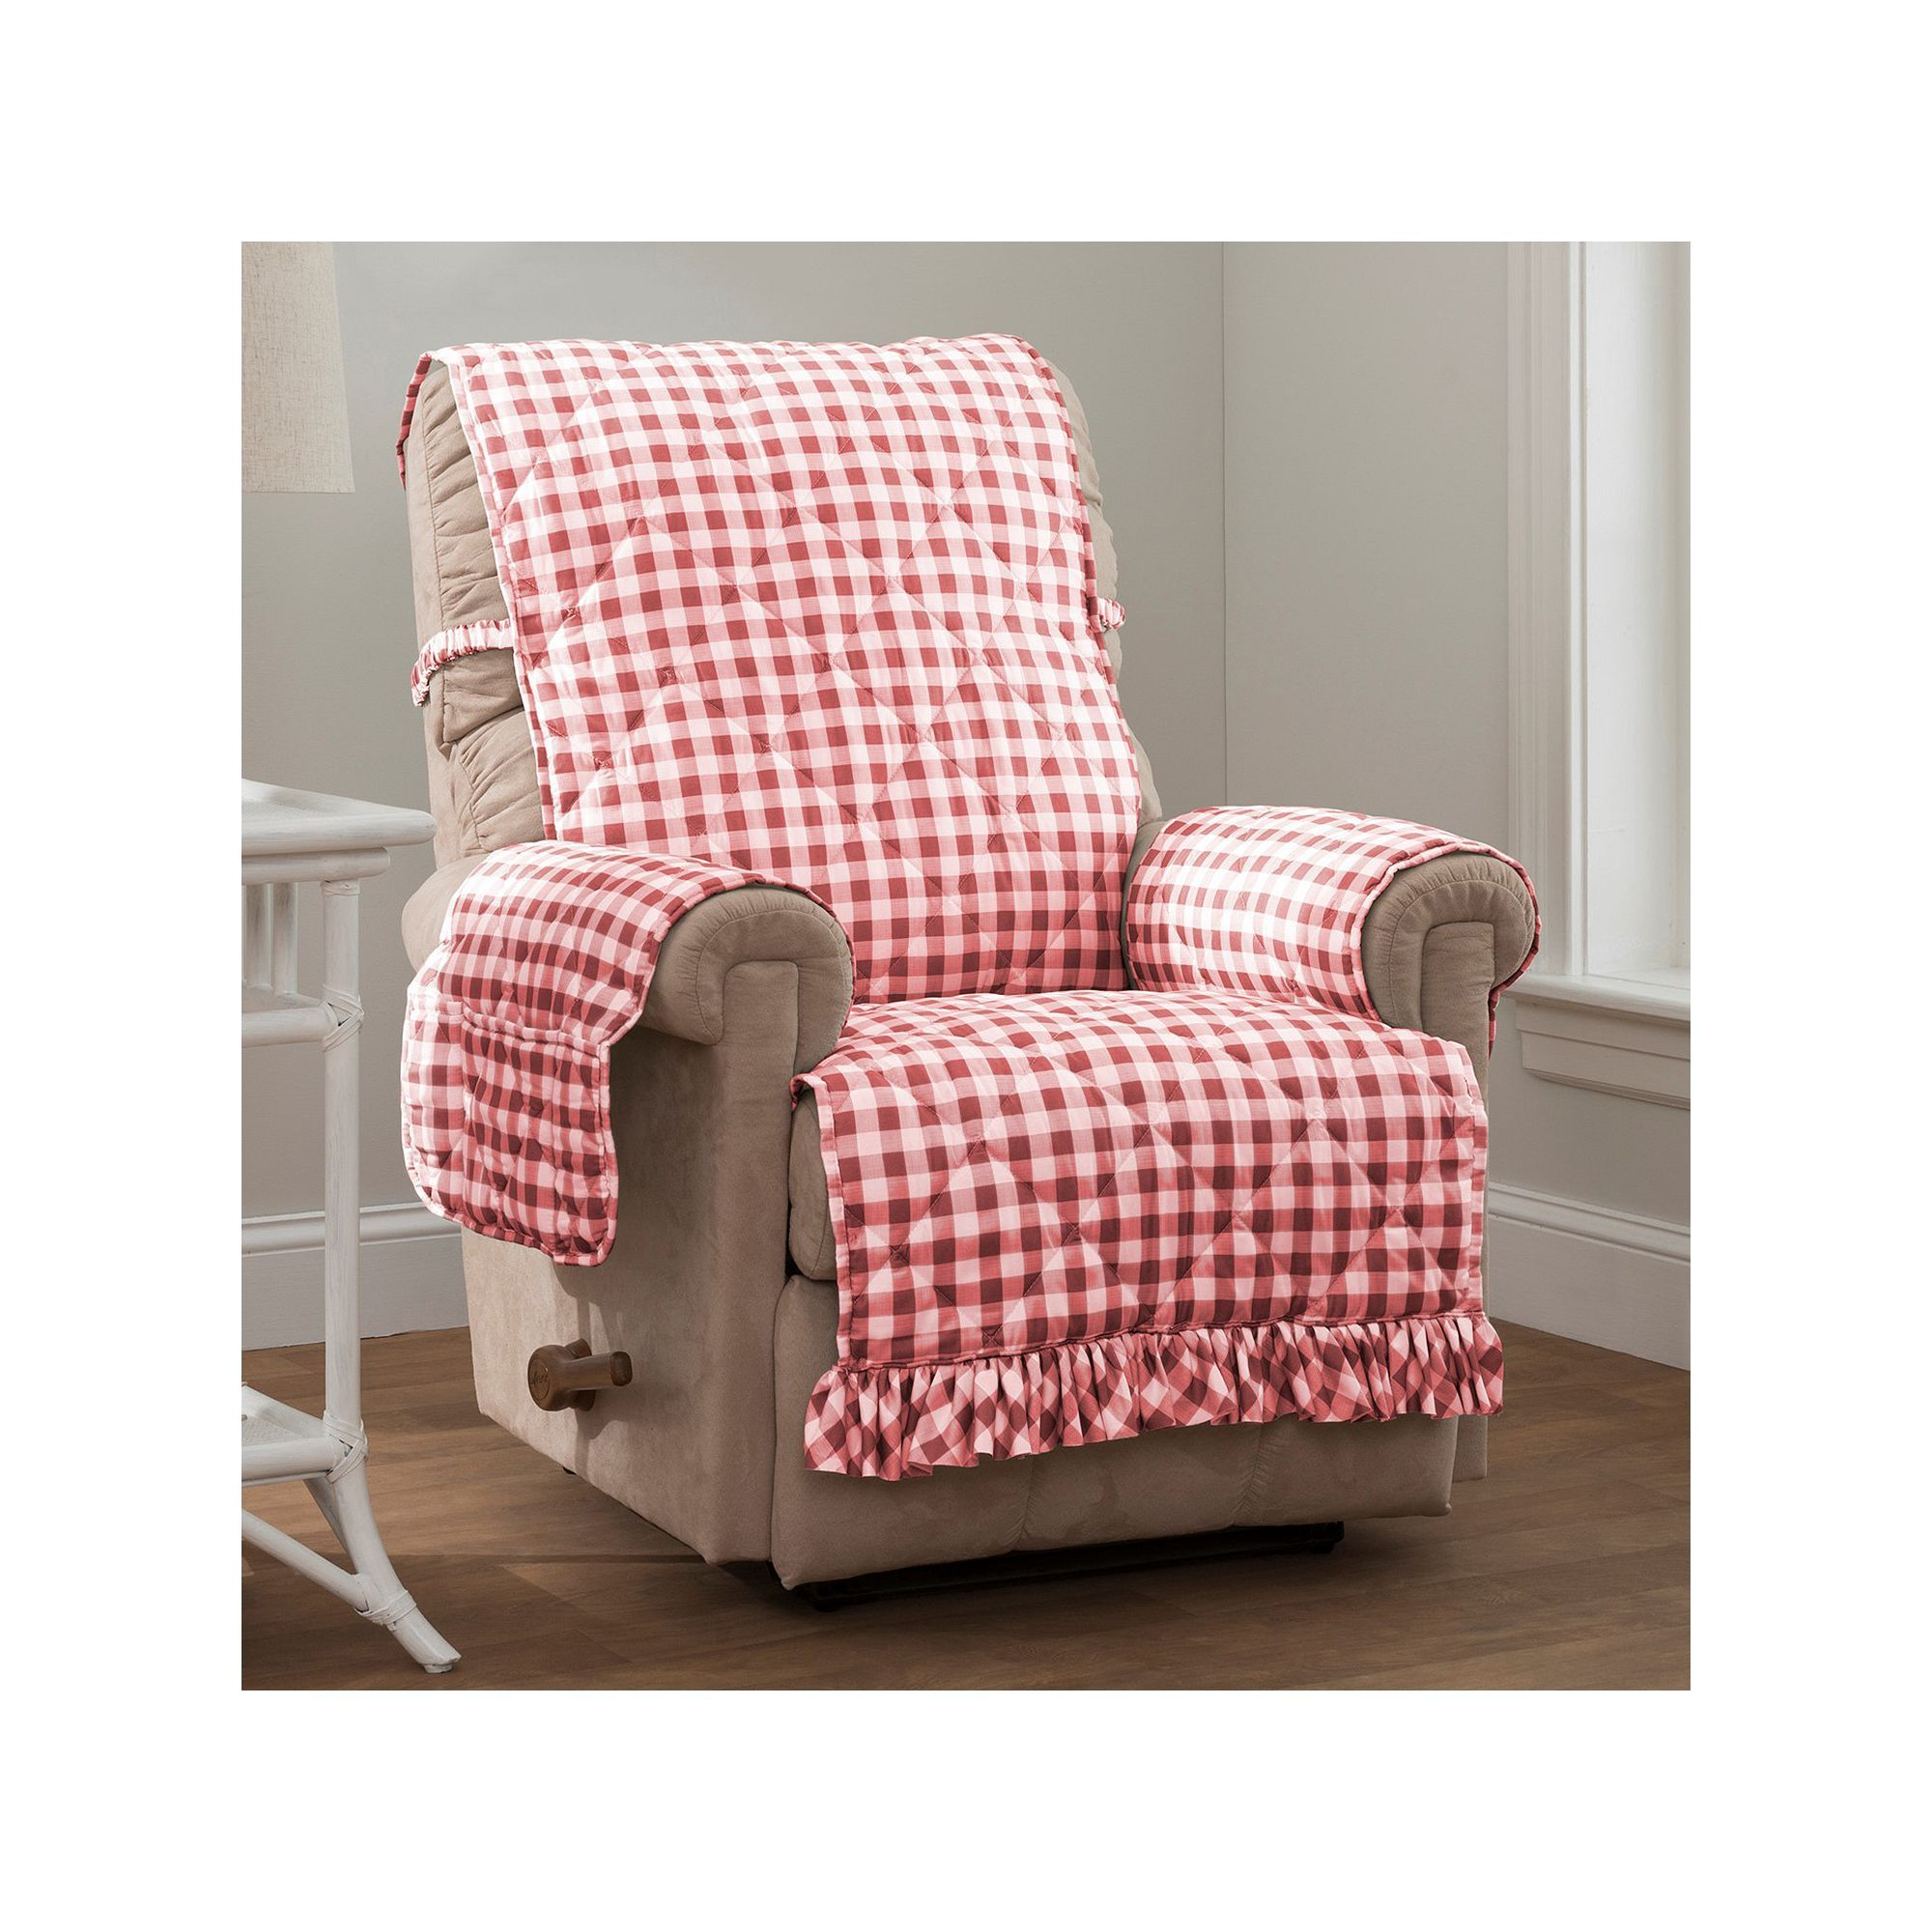 stretch slipcovers double p for recliners slipcover recliner diamond